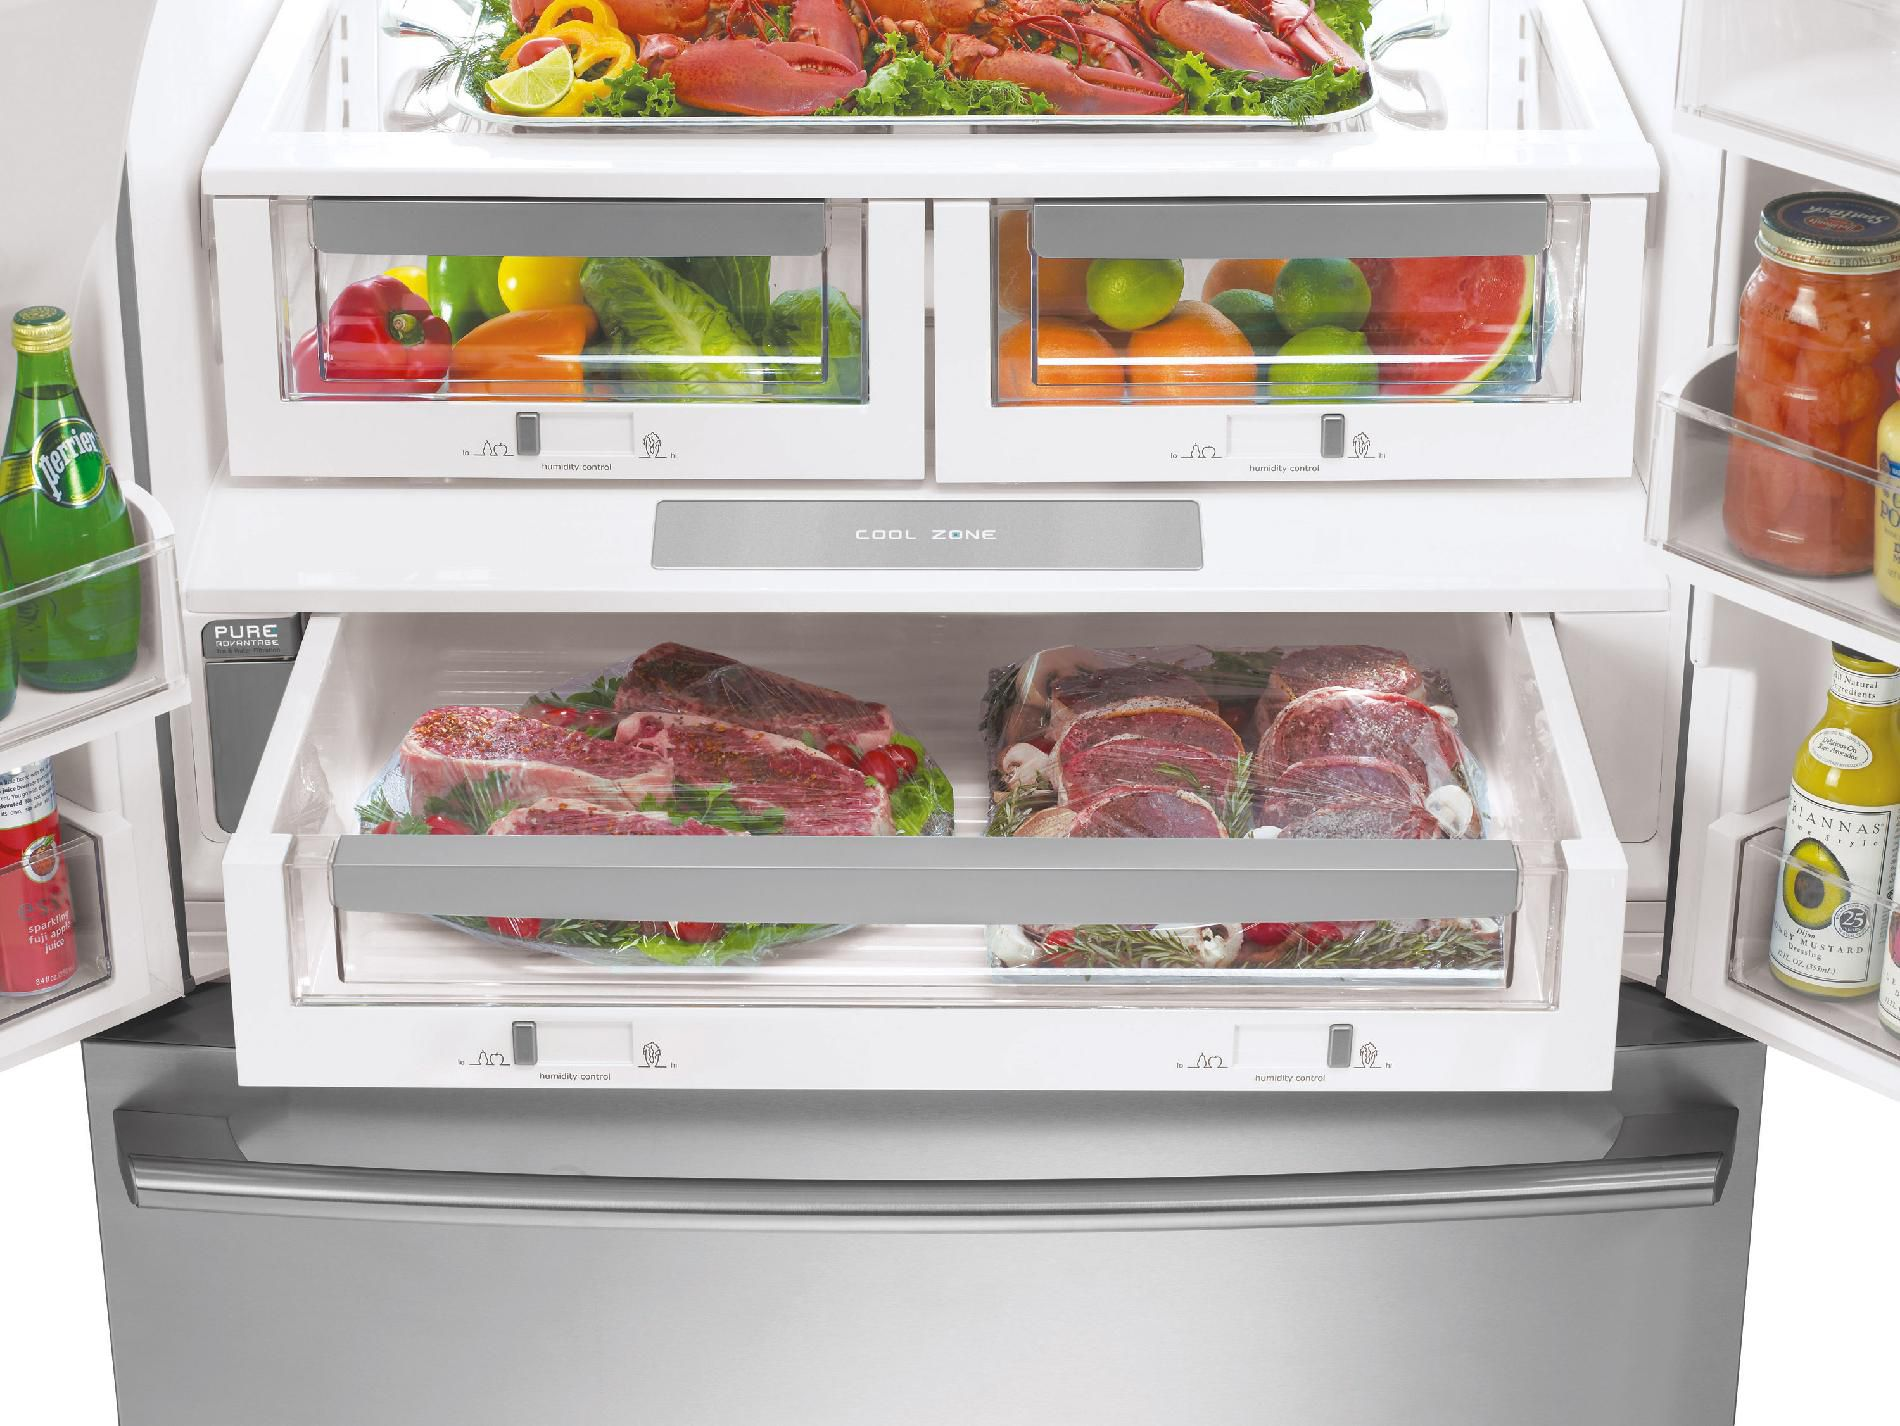 Electrolux 23 cu. ft. Counter-depth French Door Refrigerator w/ IQ-Touch™ Controls - Stainless Steel